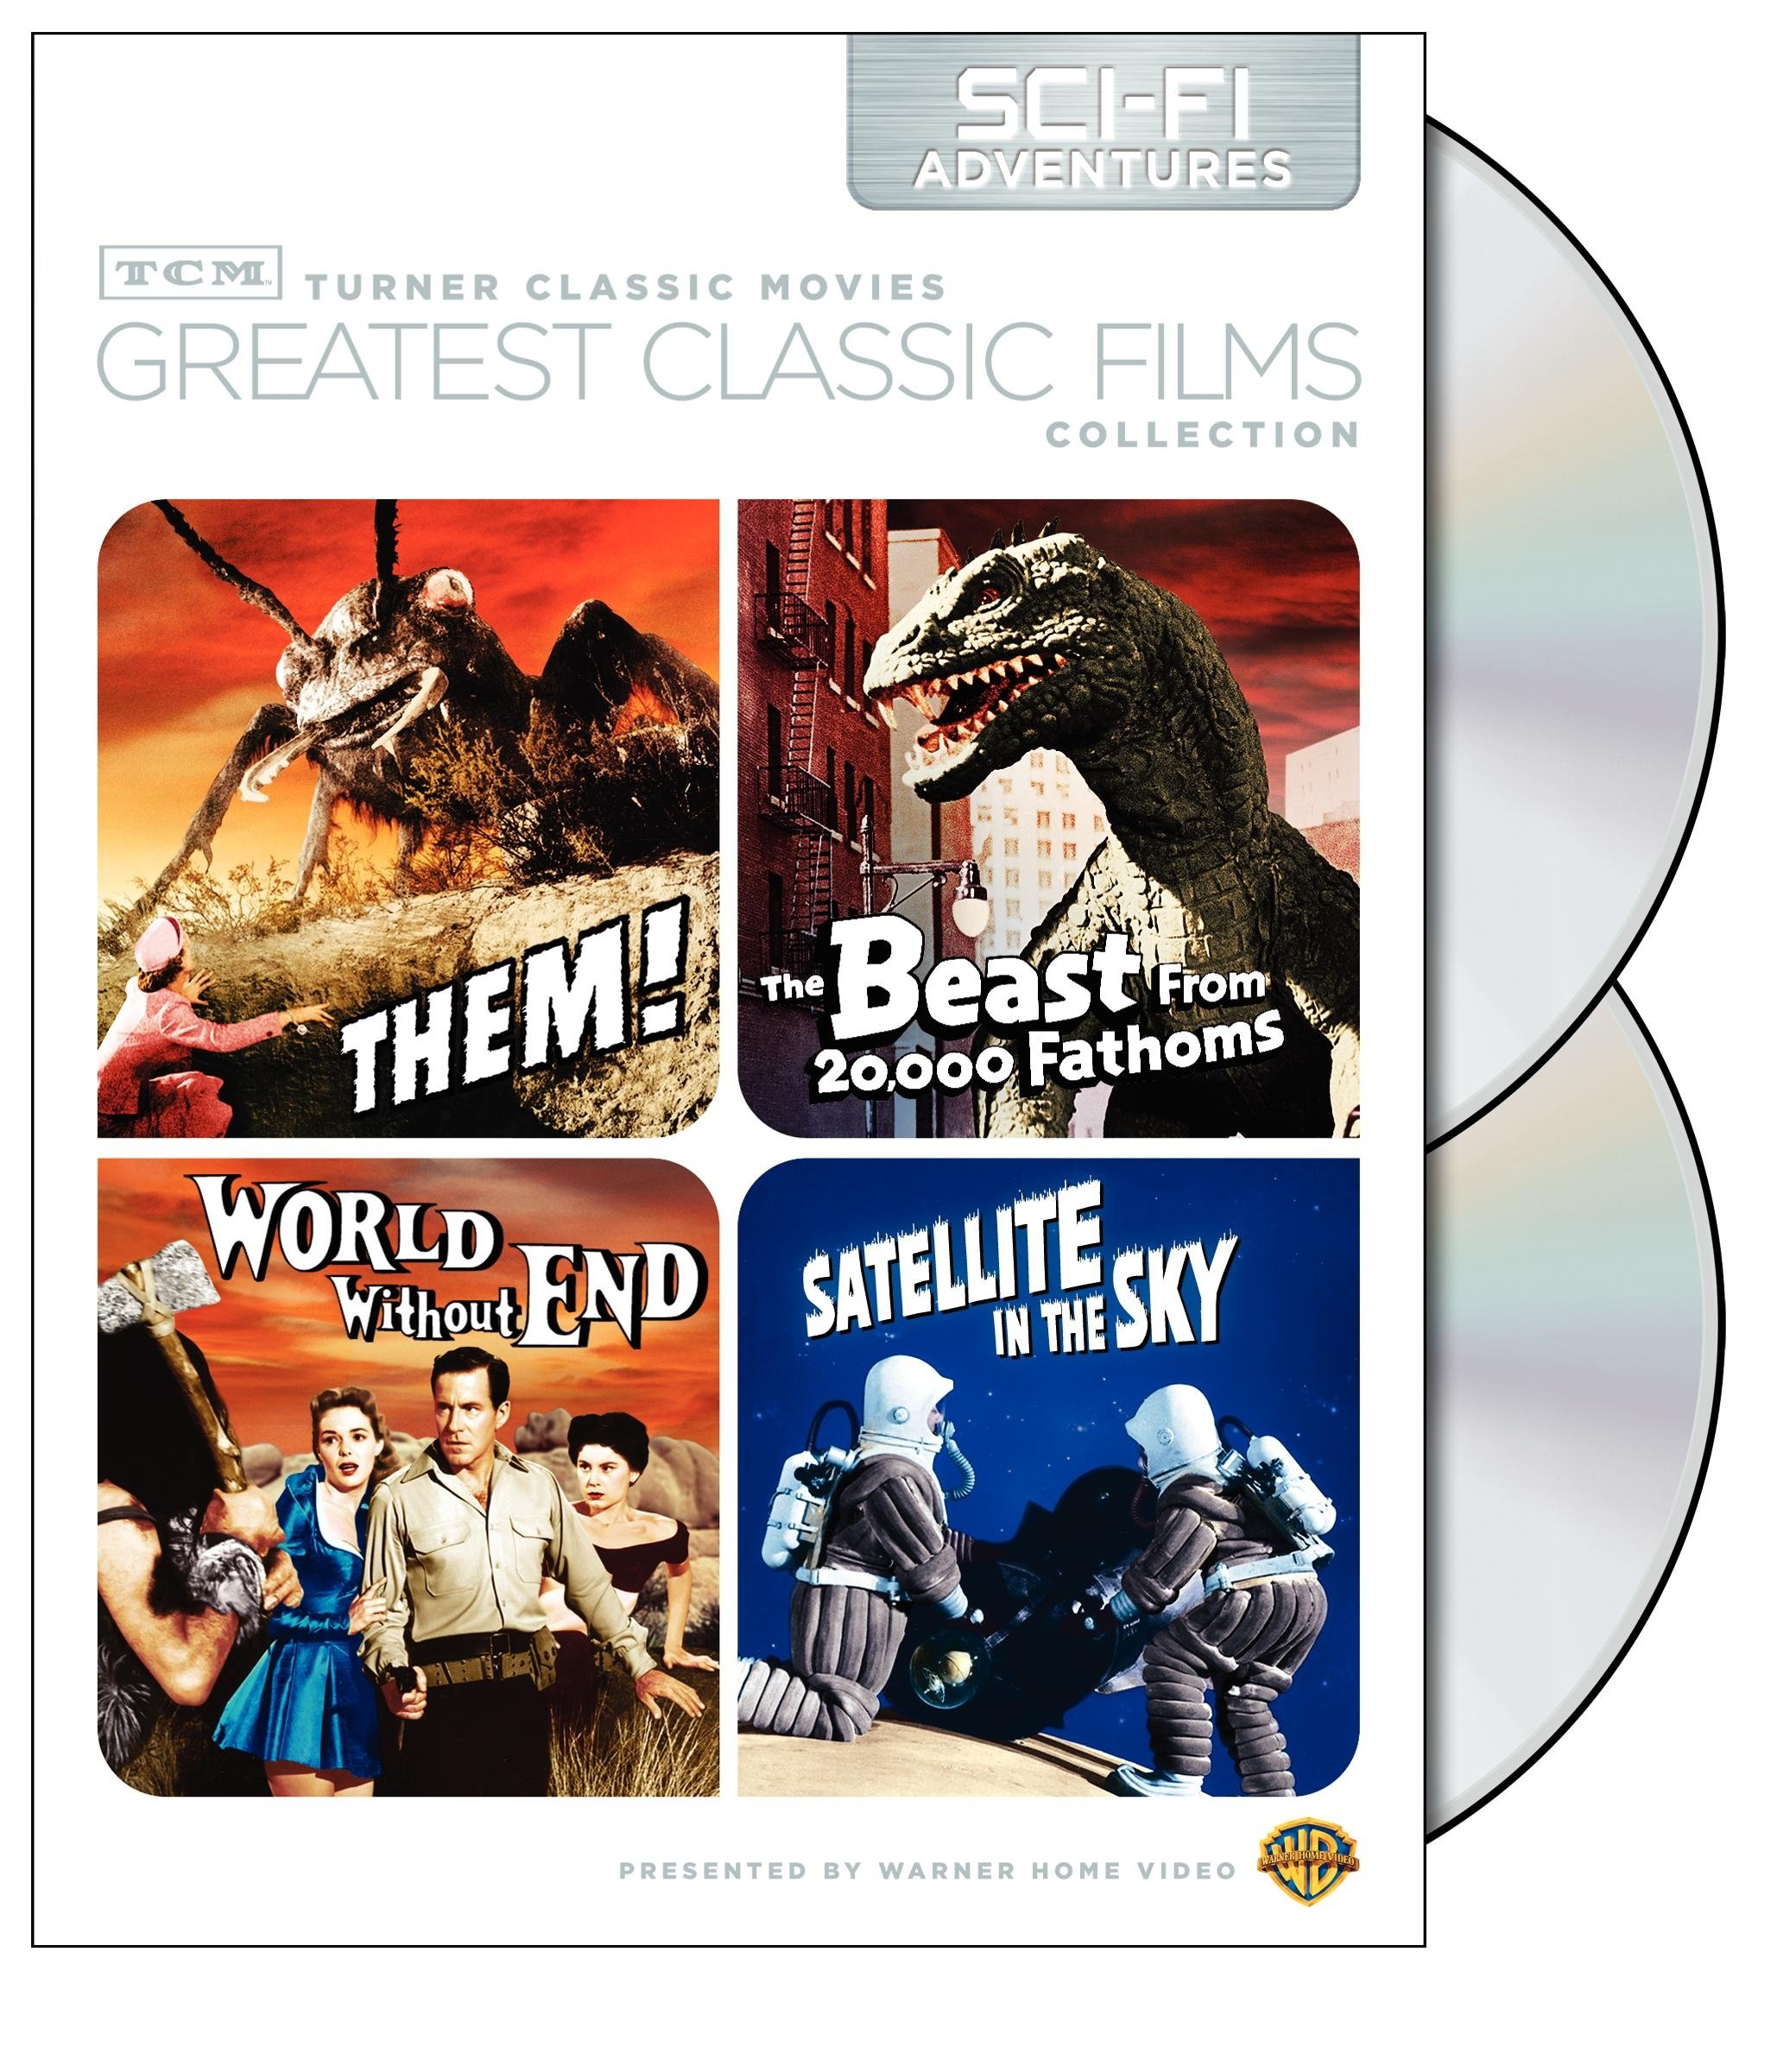 TCM Greatest Classic Films Collection: Sci-Fi Adventures (Them! / The Beast from 20,000 Fathoms / World Without End / Satellite in the Sky) by Warner Home Video